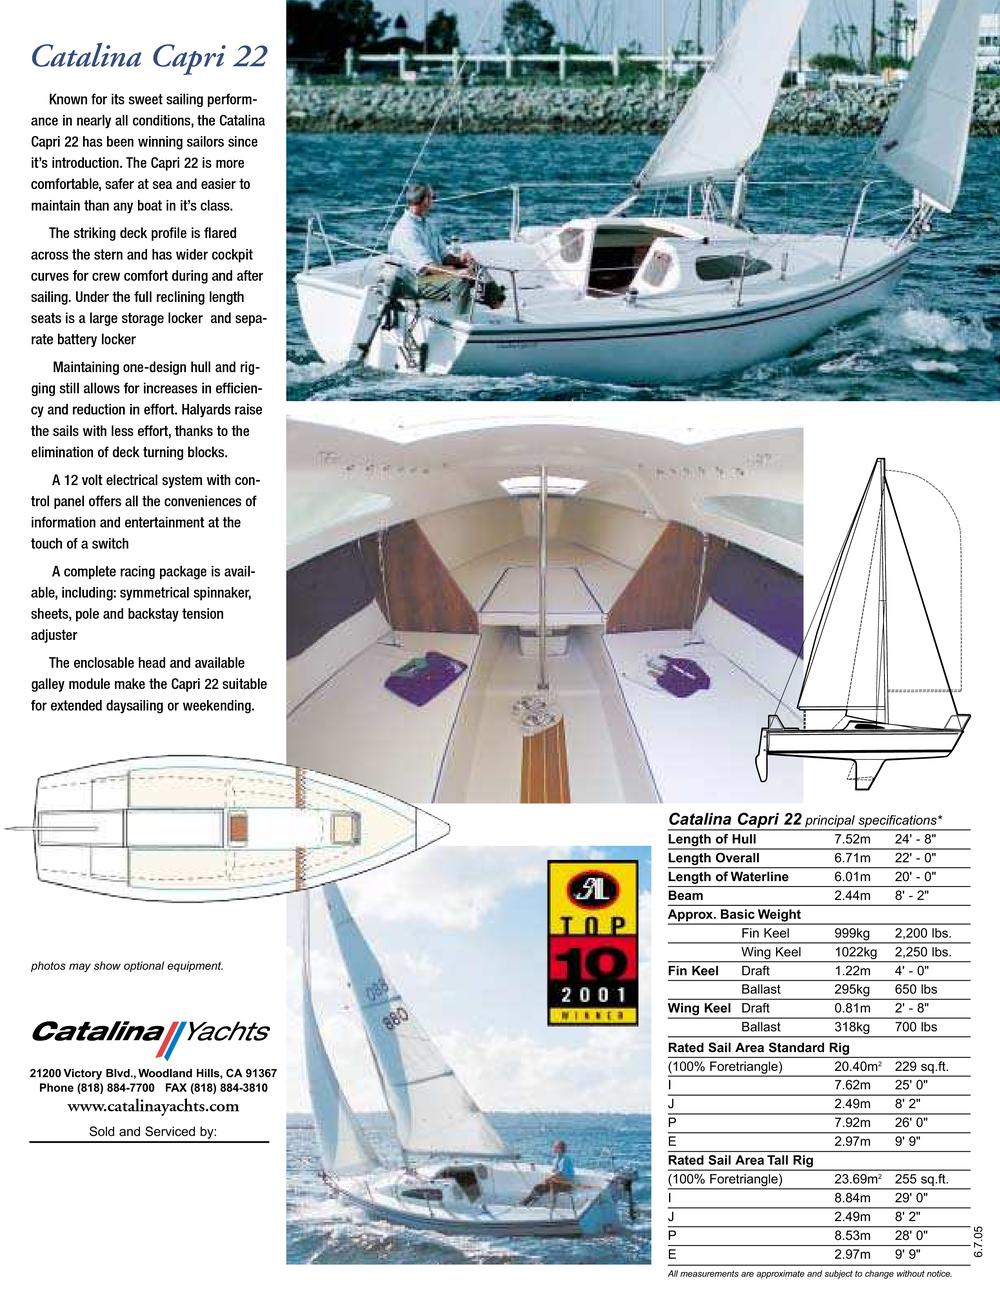 Catalina Capri 22 Specifications Mast Height Displacement